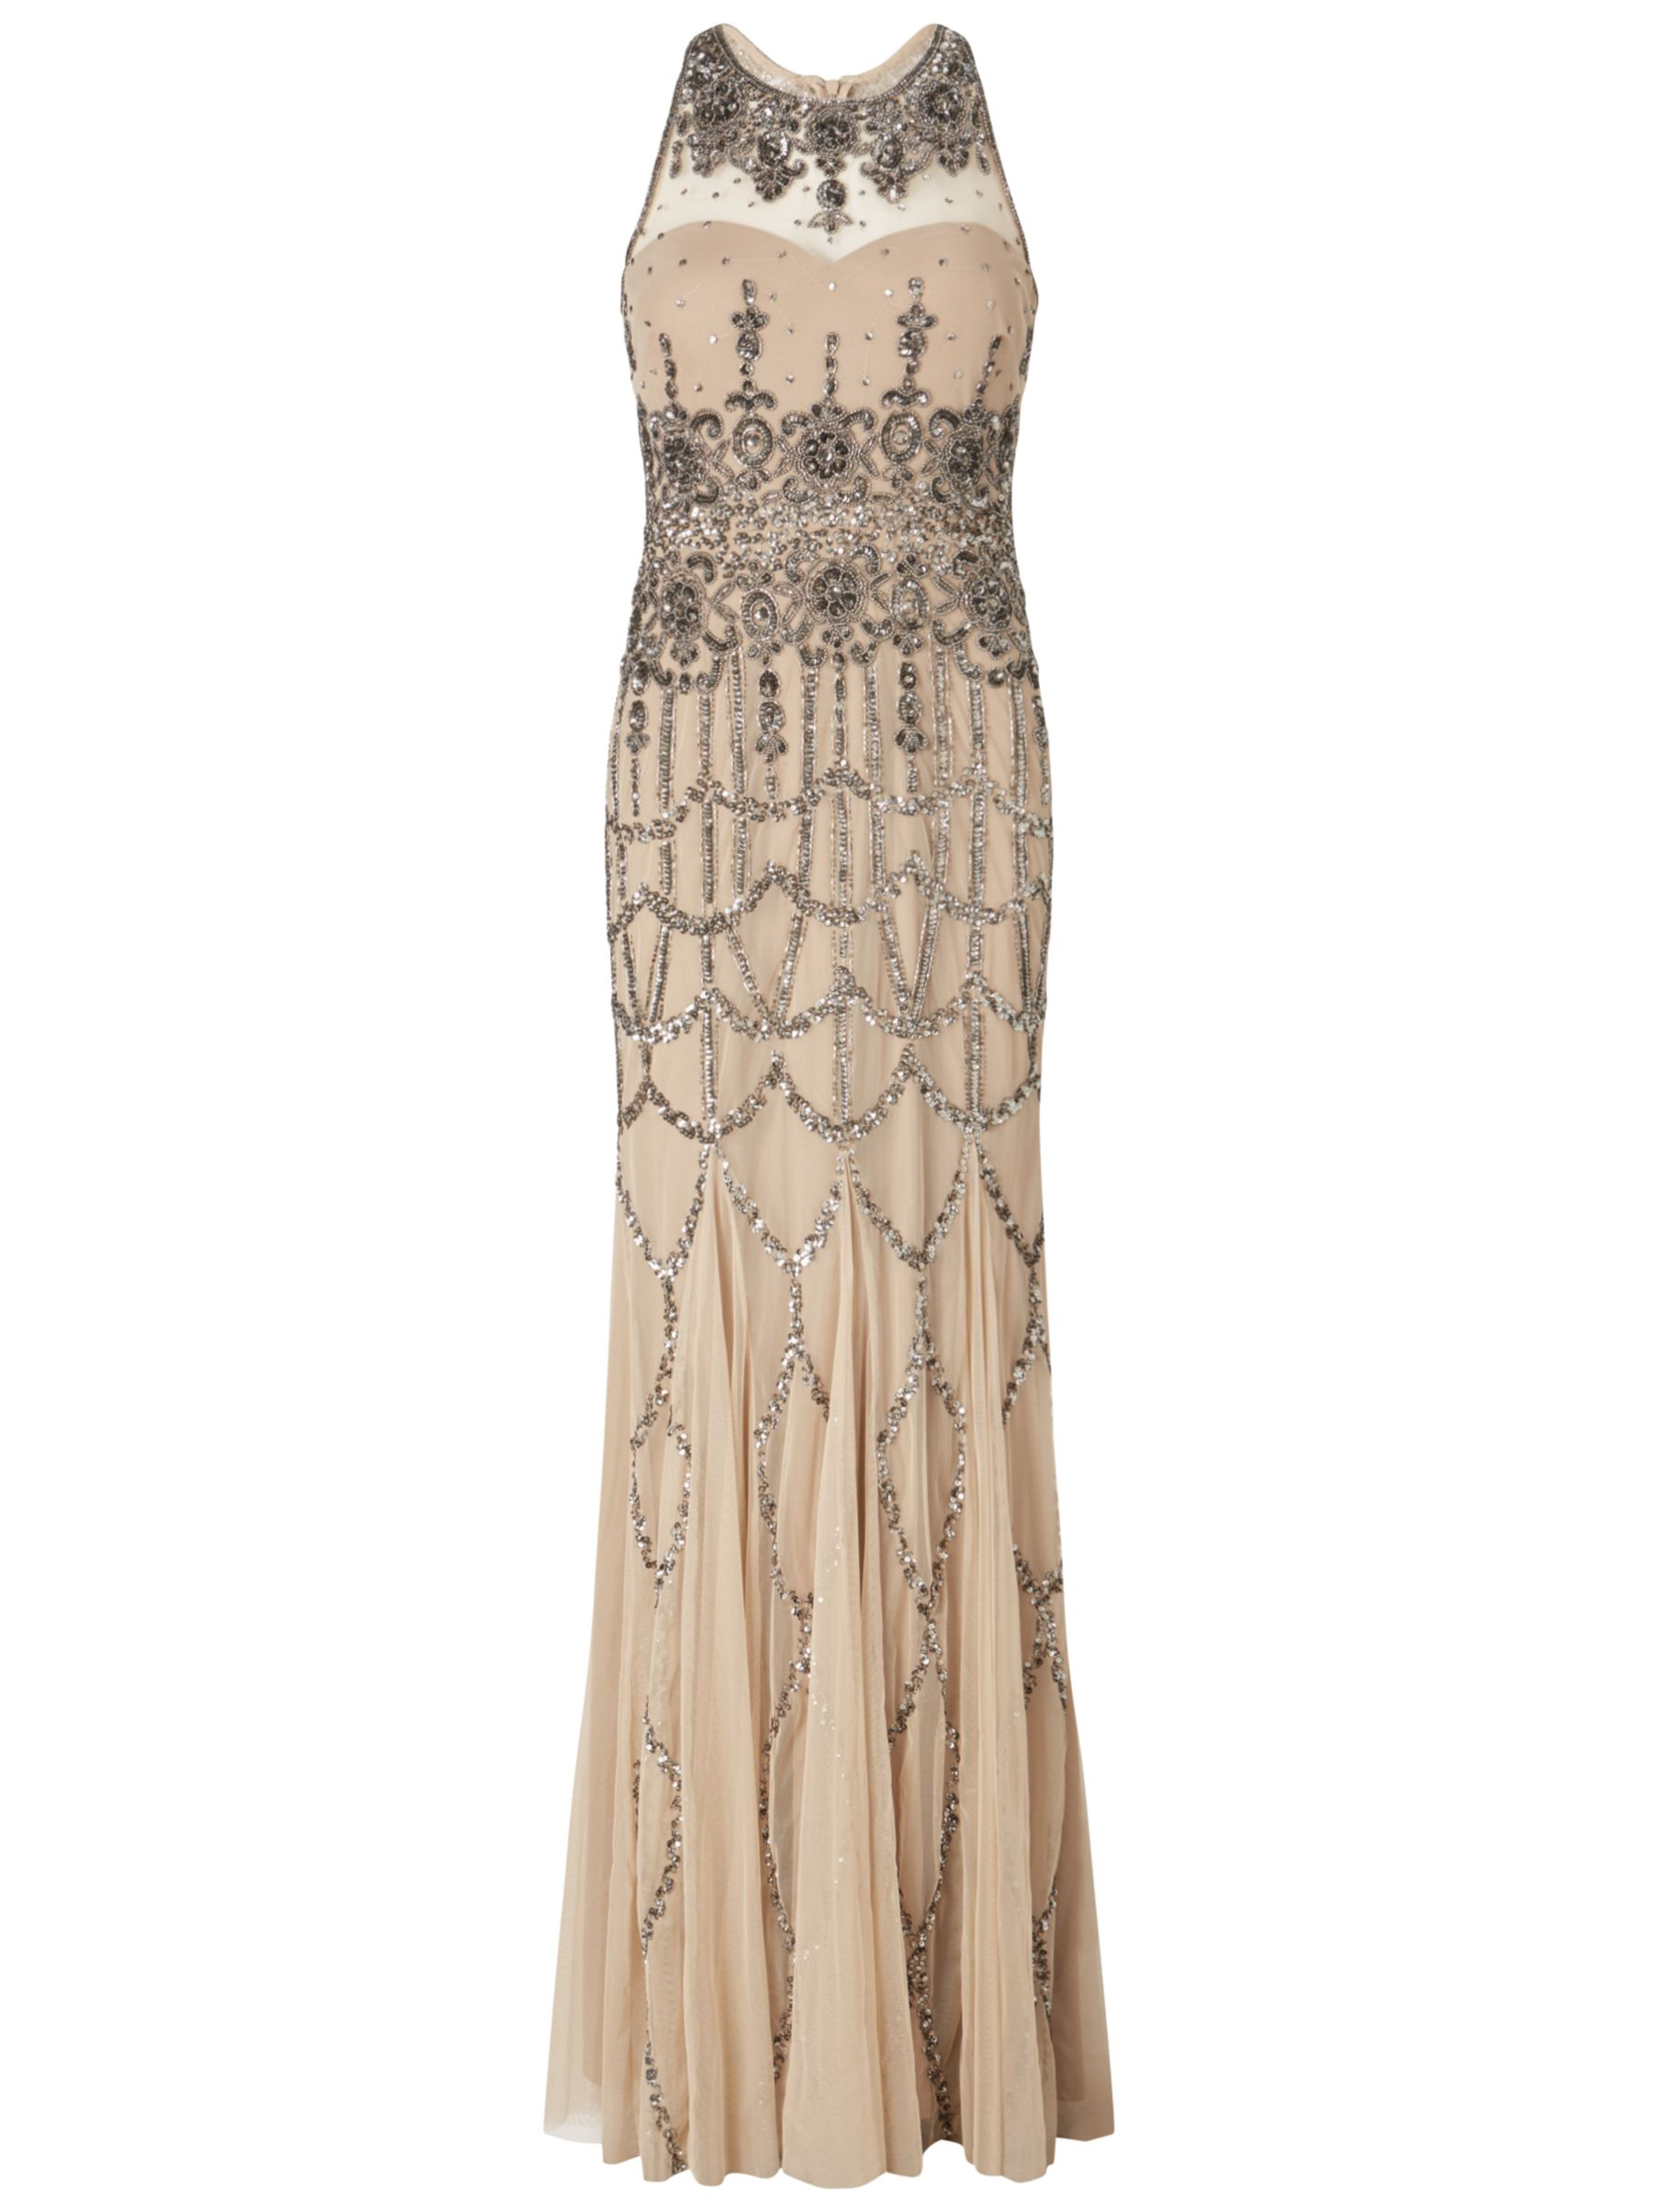 adrianna papell sleeveless beaded gown nude, adrianna, papell, sleeveless, beaded, gown, nude, adrianna papell, 16|8|10|14|12|18, women, eveningwear, gifts, wedding, wedding clothing, wedding dresses, plus size, brands a-k, womens dresses, 1921134